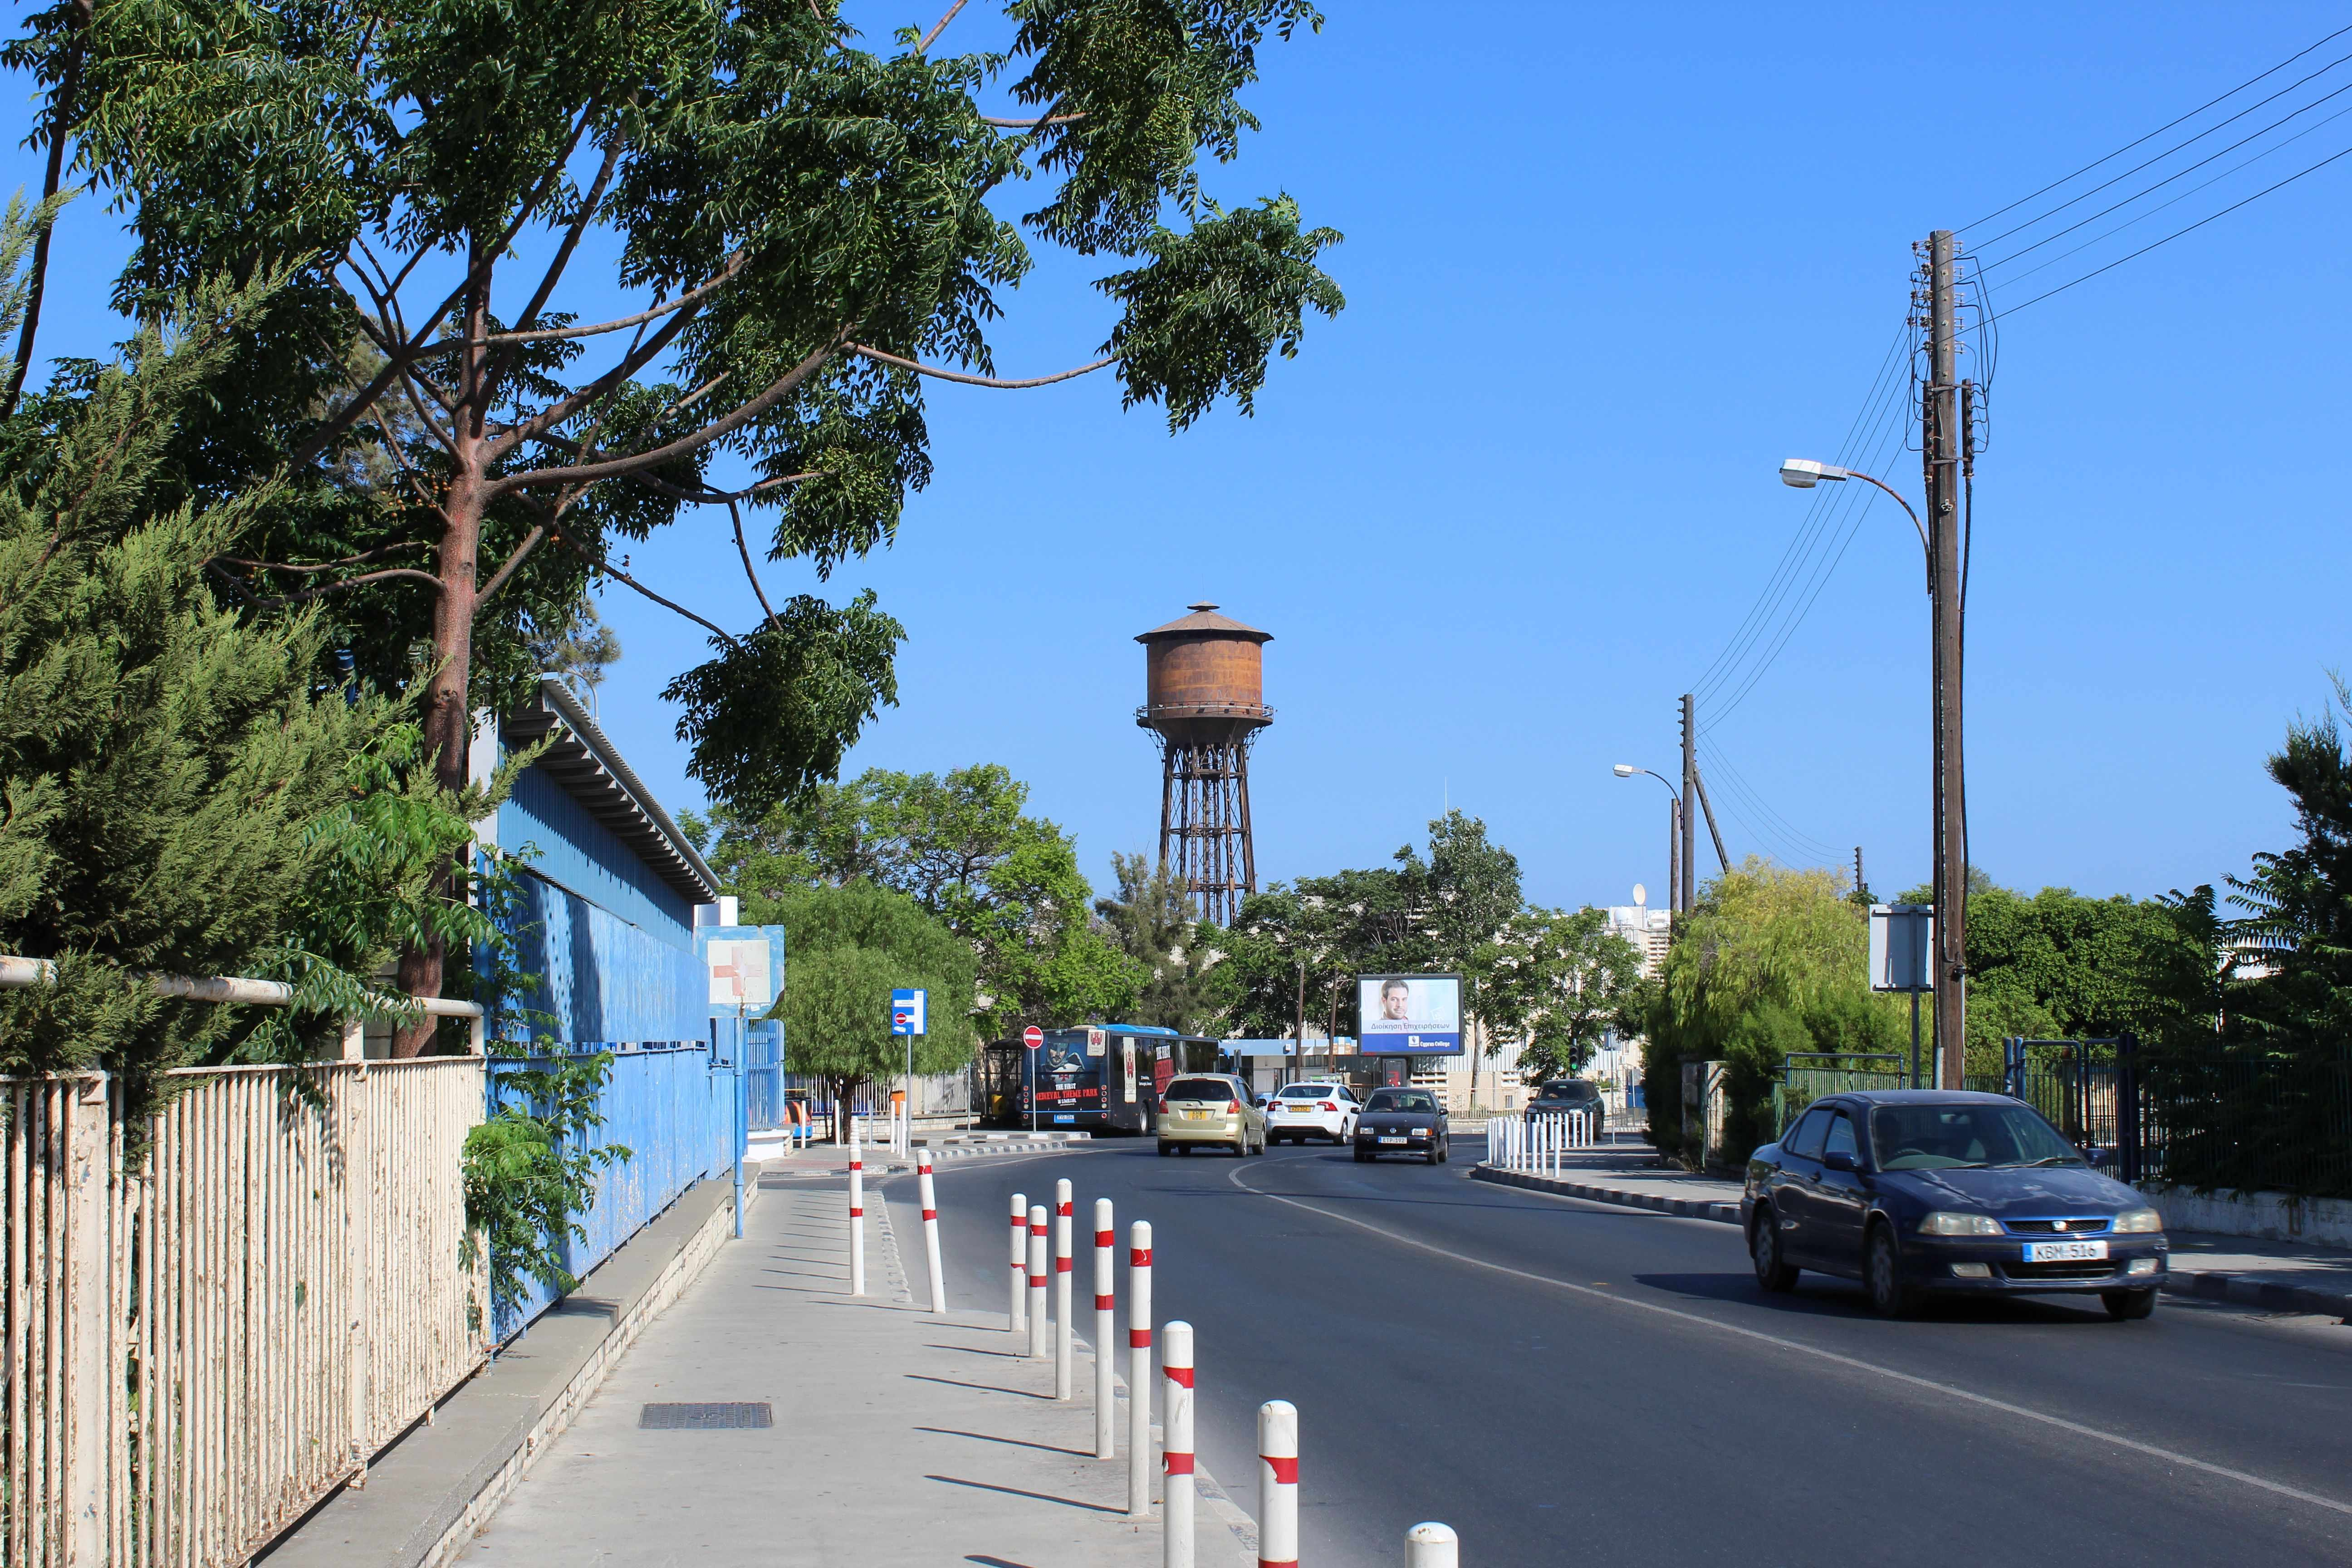 The water tower of Limassol